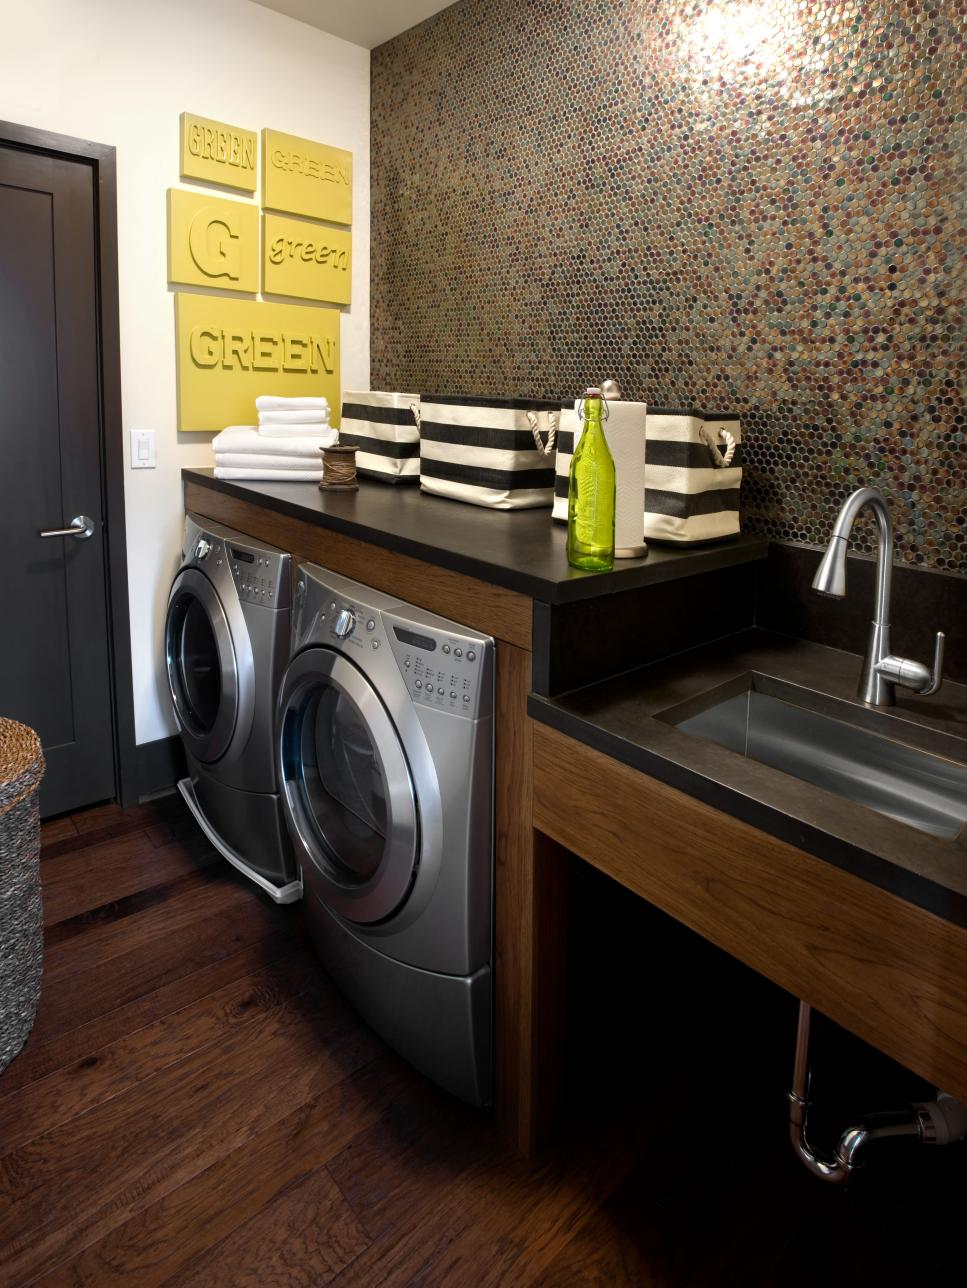 Our favorite laundry rooms from hgtv home giveaways hgtv - Laundry room design ideas ...